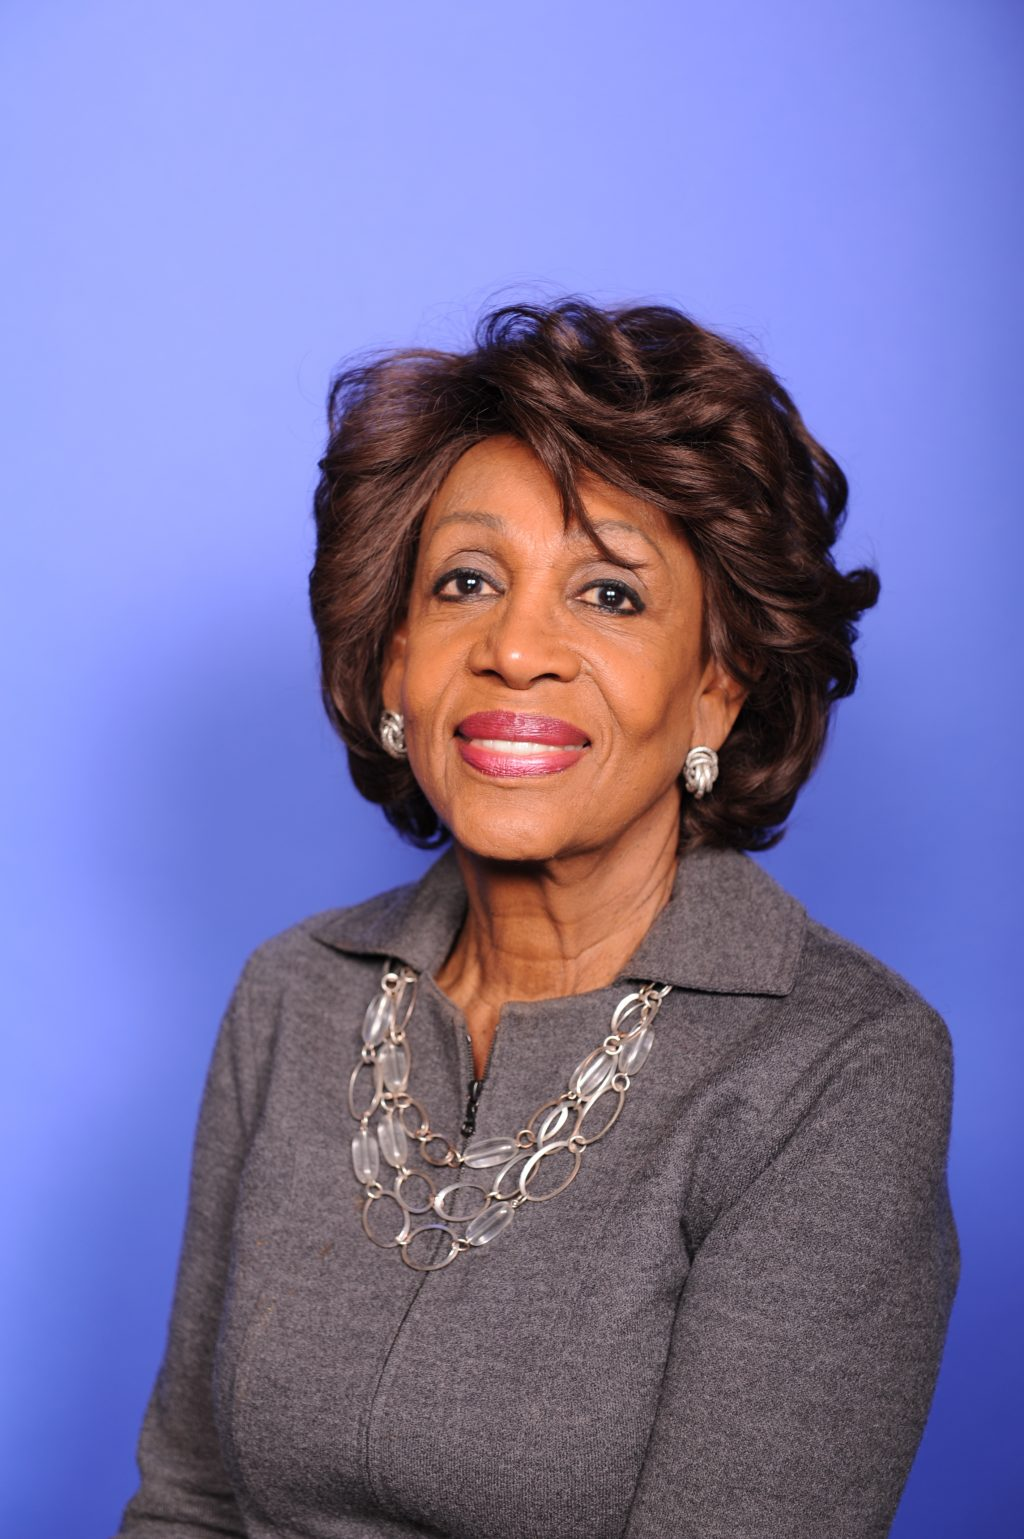 Rep. Waters Announces More Than $21.9 Million in Federal Noise Mitigation Grants for People Who Live Near LAX